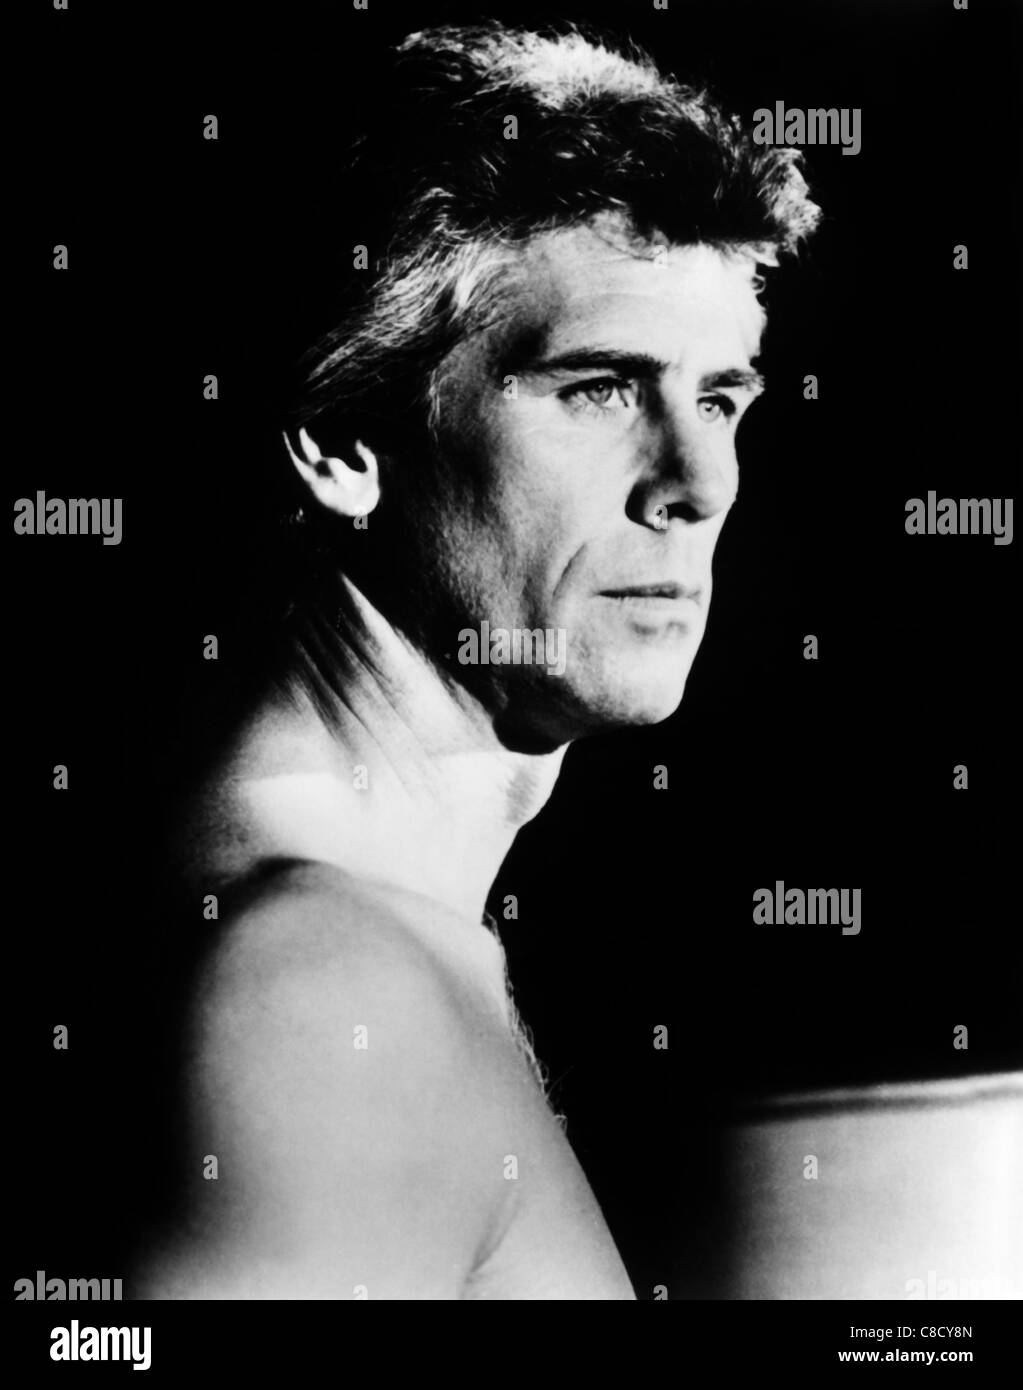 BARRY BOSTWICK ACTOR (1990) - Stock Image